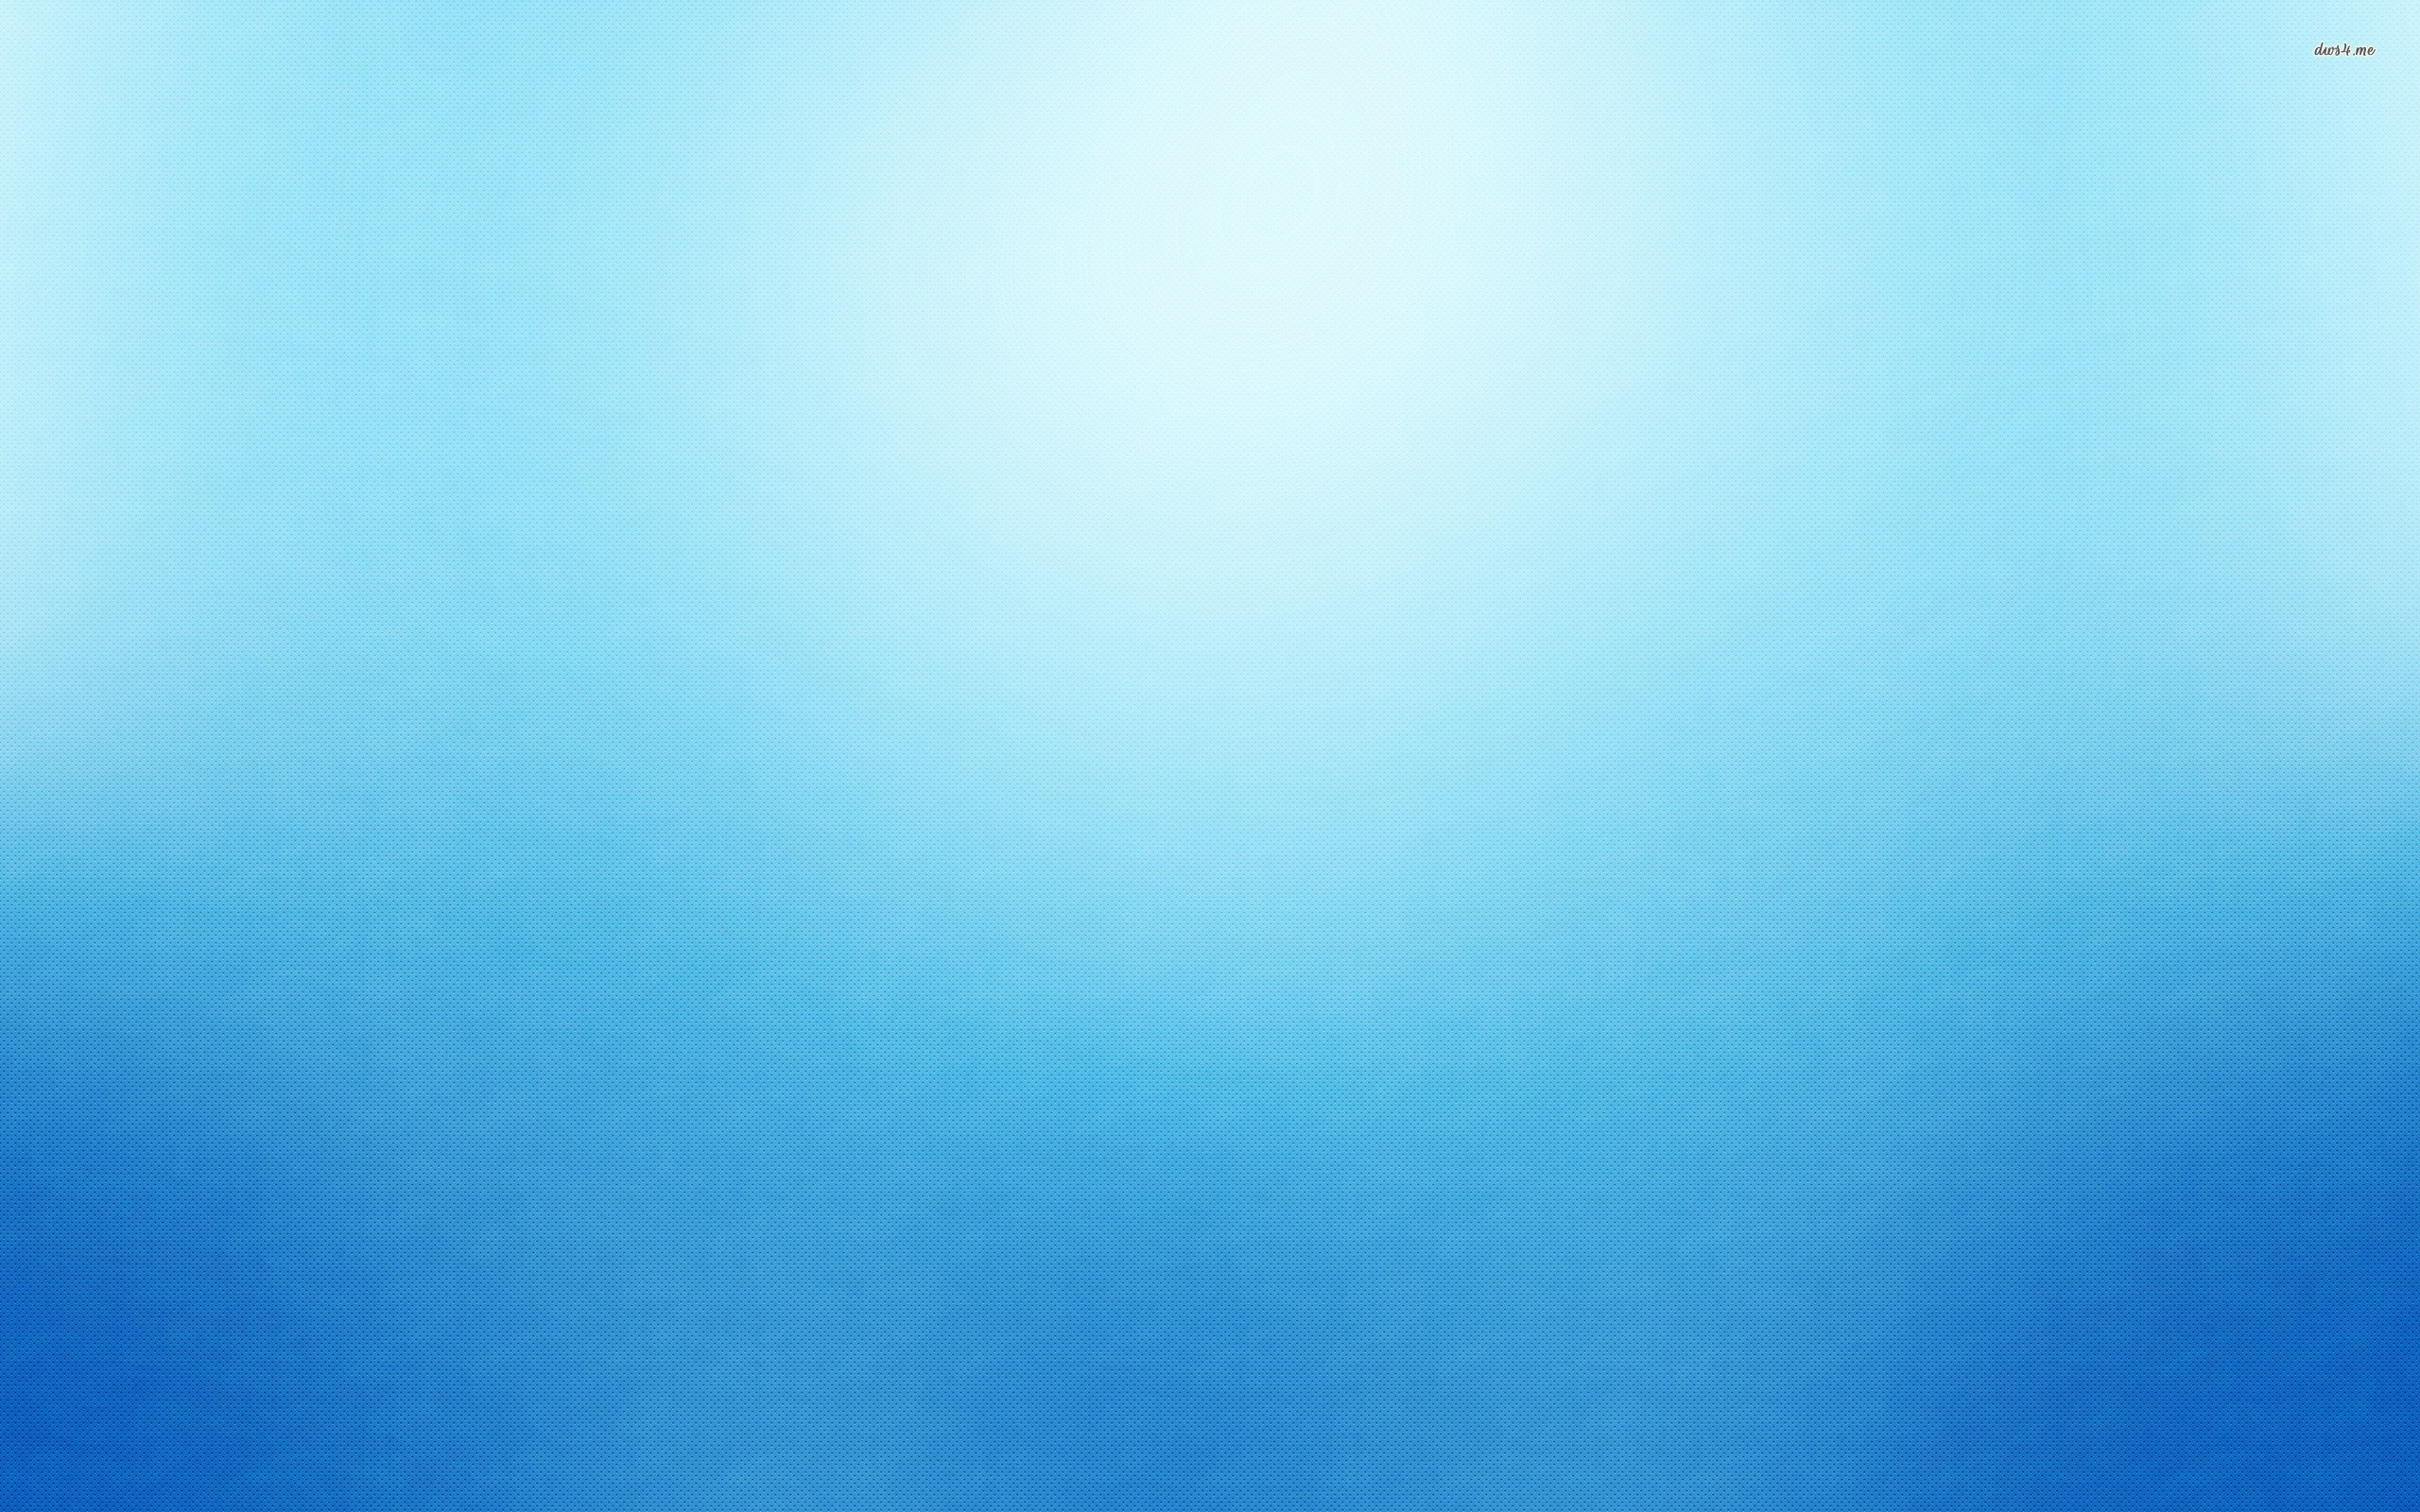 ... Light blue texture wallpaper 2560x1600 ...